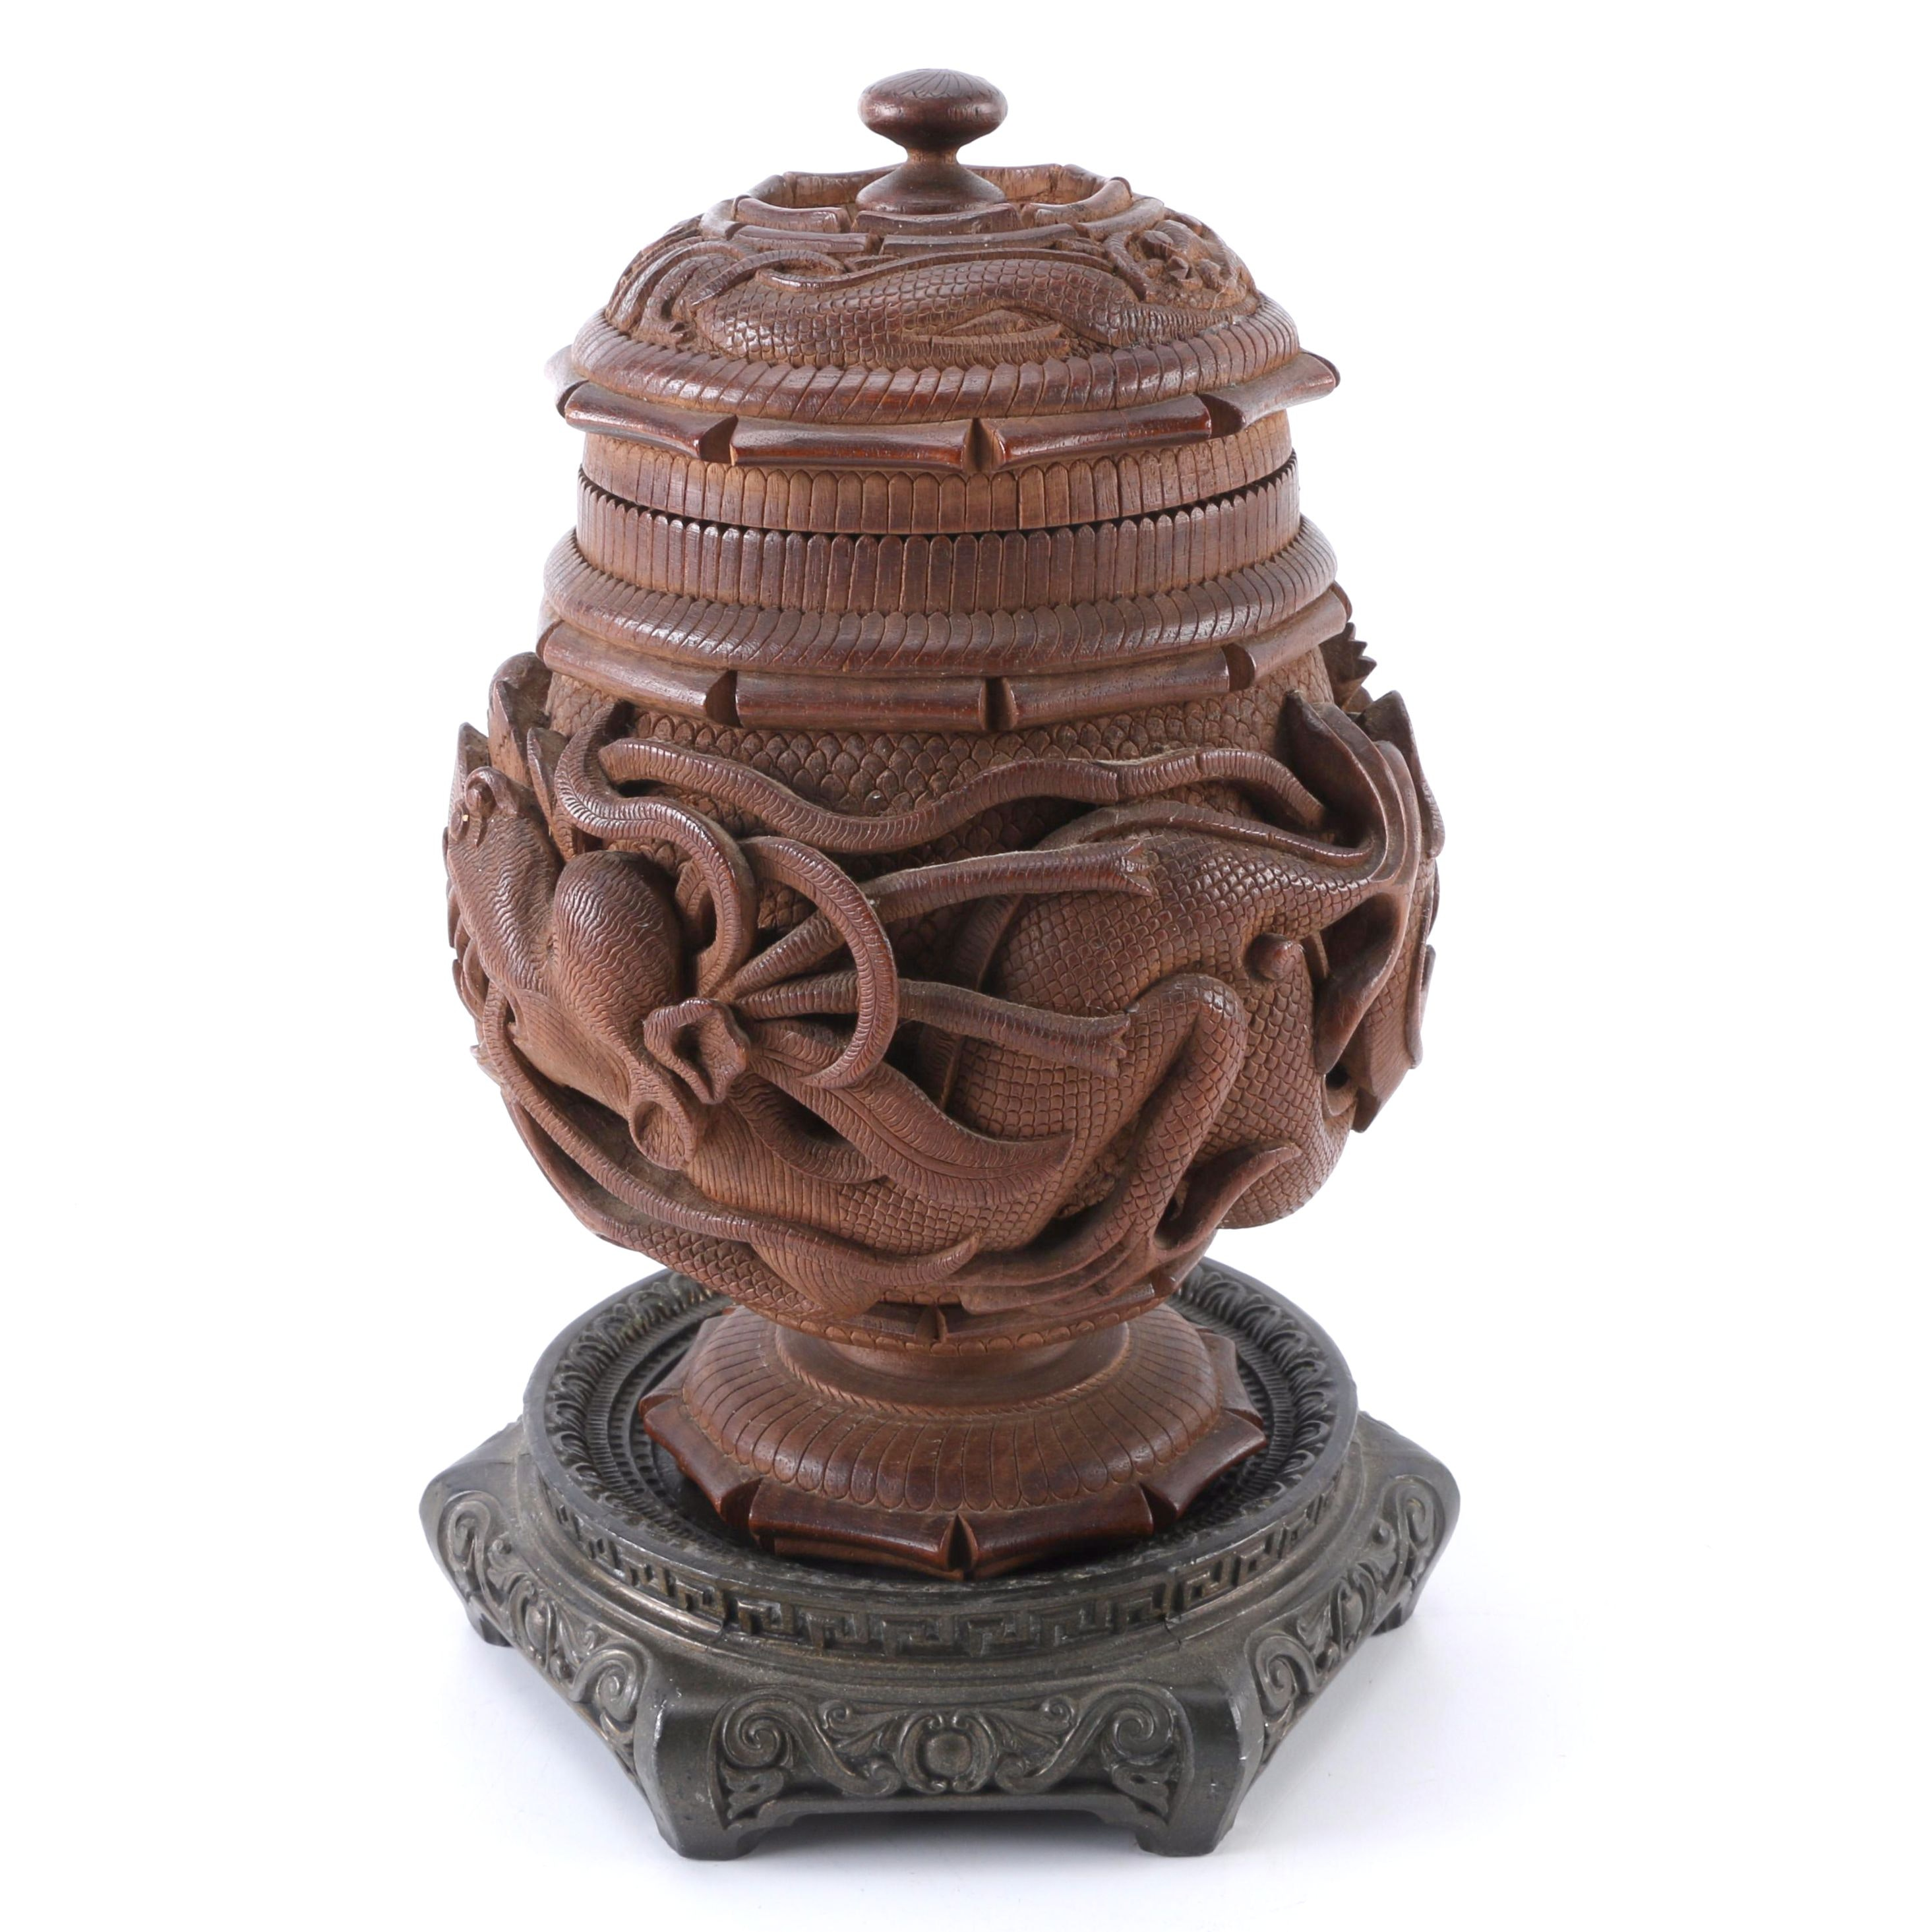 Chinoiserie Carved Wooden Dragon Motif Tobacco Jar on Stand